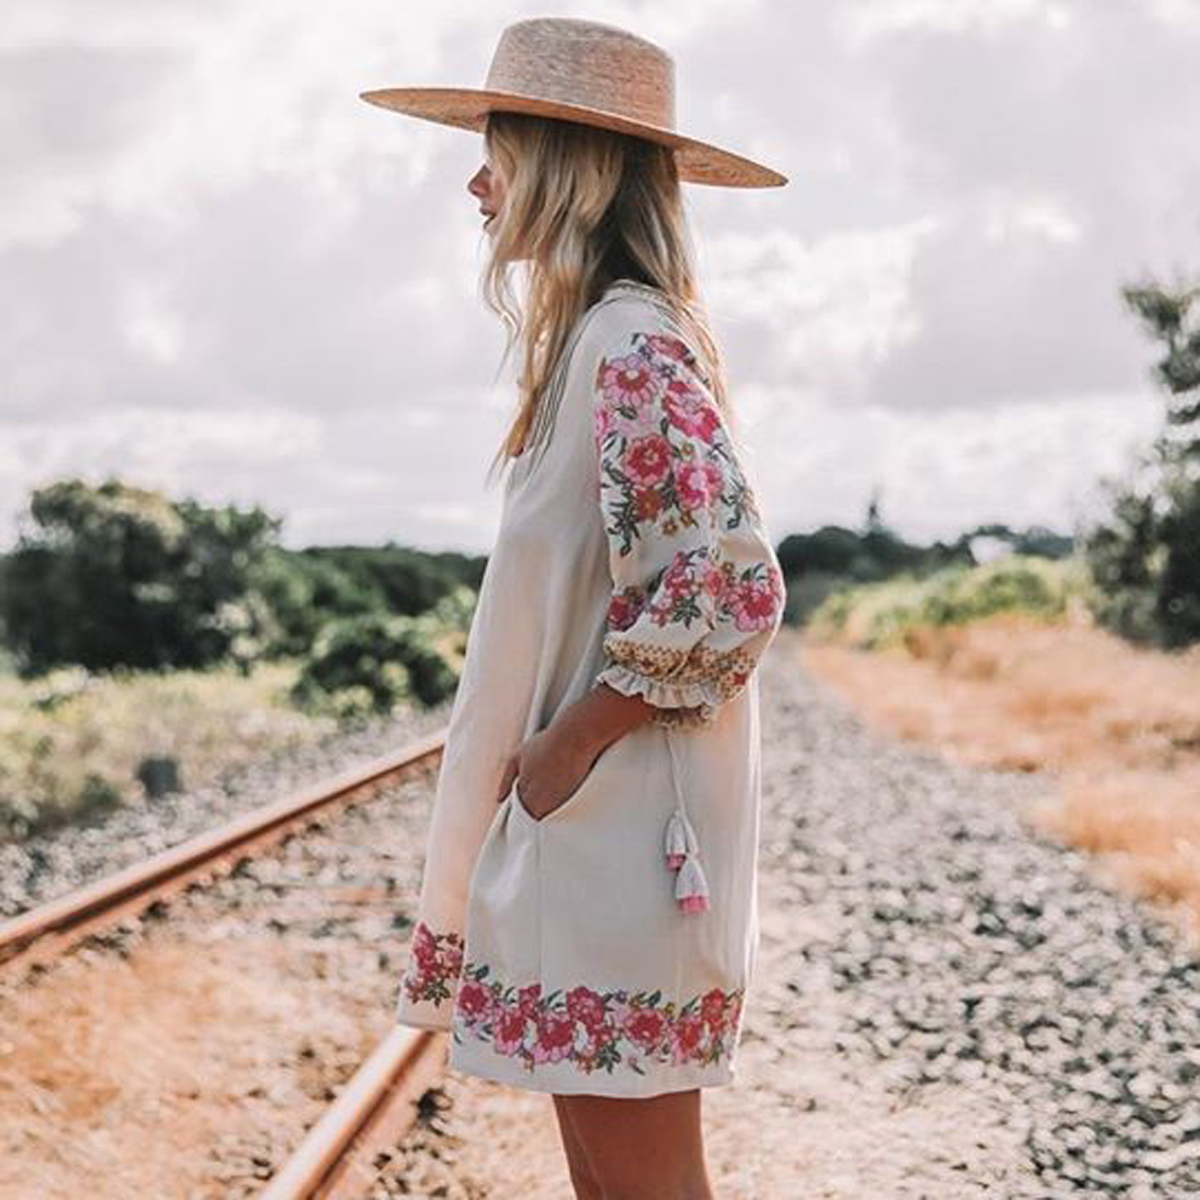 Jastie Embroidered floral Tunic Dress 2018 Spring Summer Dresses Lantern Sleeve V-neck Tassel Boho Hippie Beach Dress Vestidos